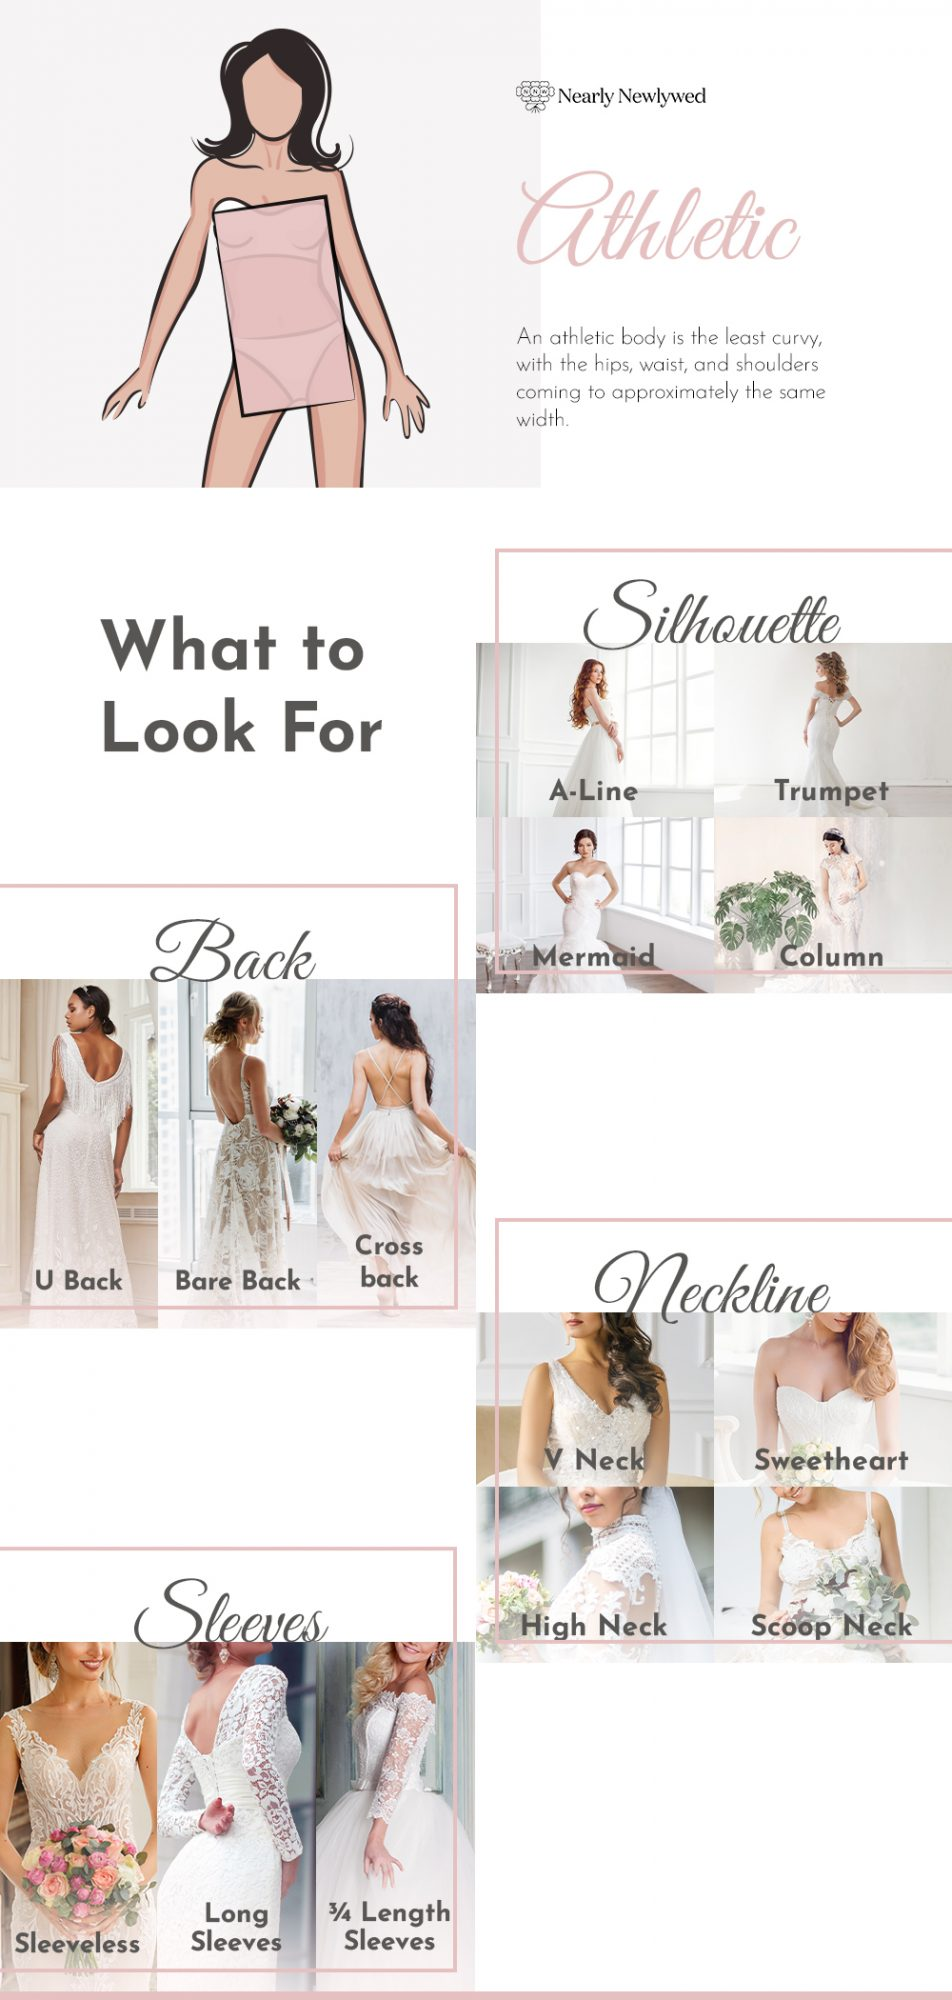 Wedding dress recommendations for athletic bodies